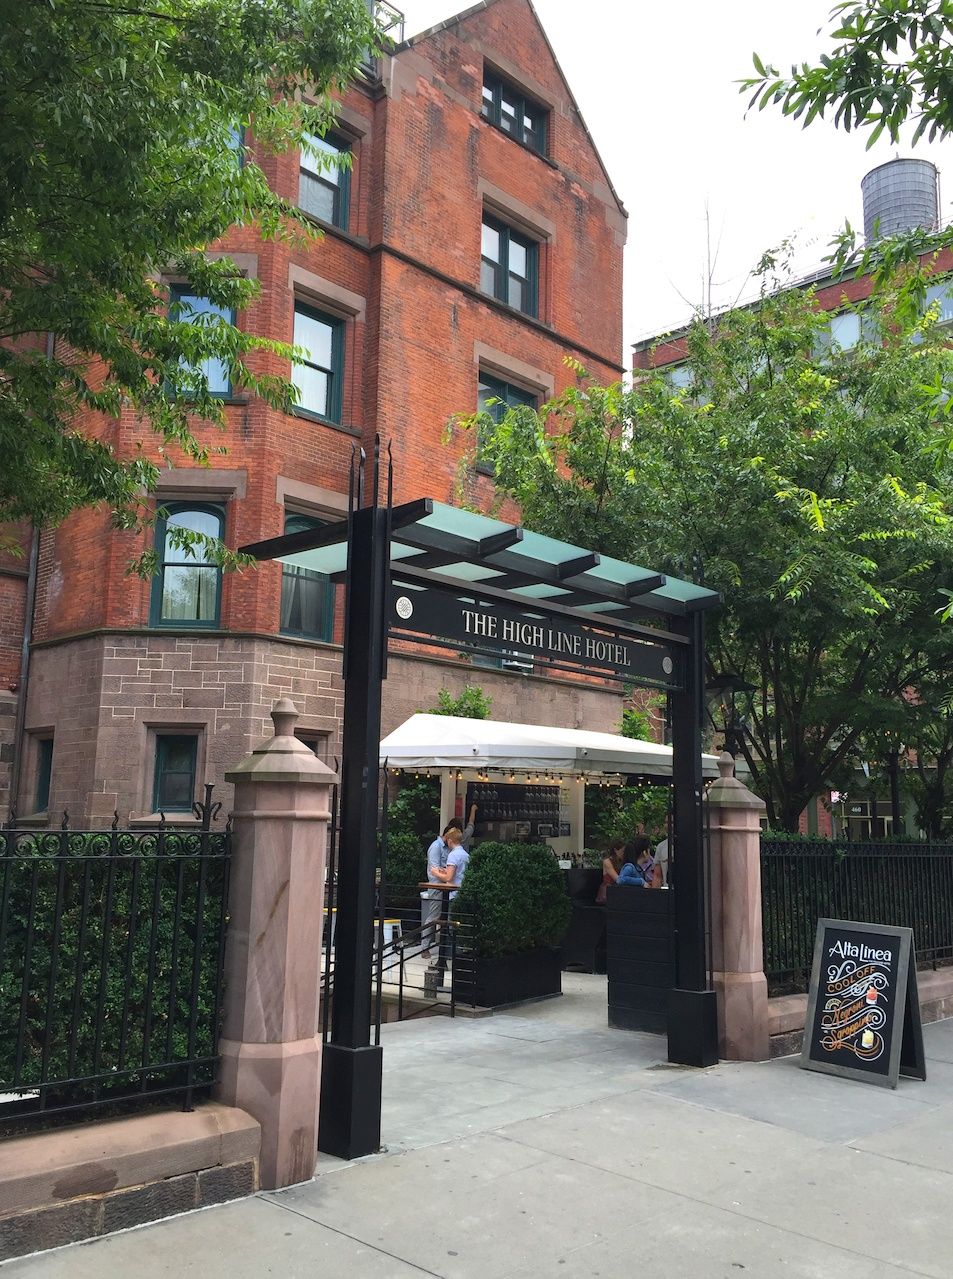 In the heart of Chelsea's galleries (and of course, the High Line itself), the High Line Hotel has a charming courtyard restaurant.